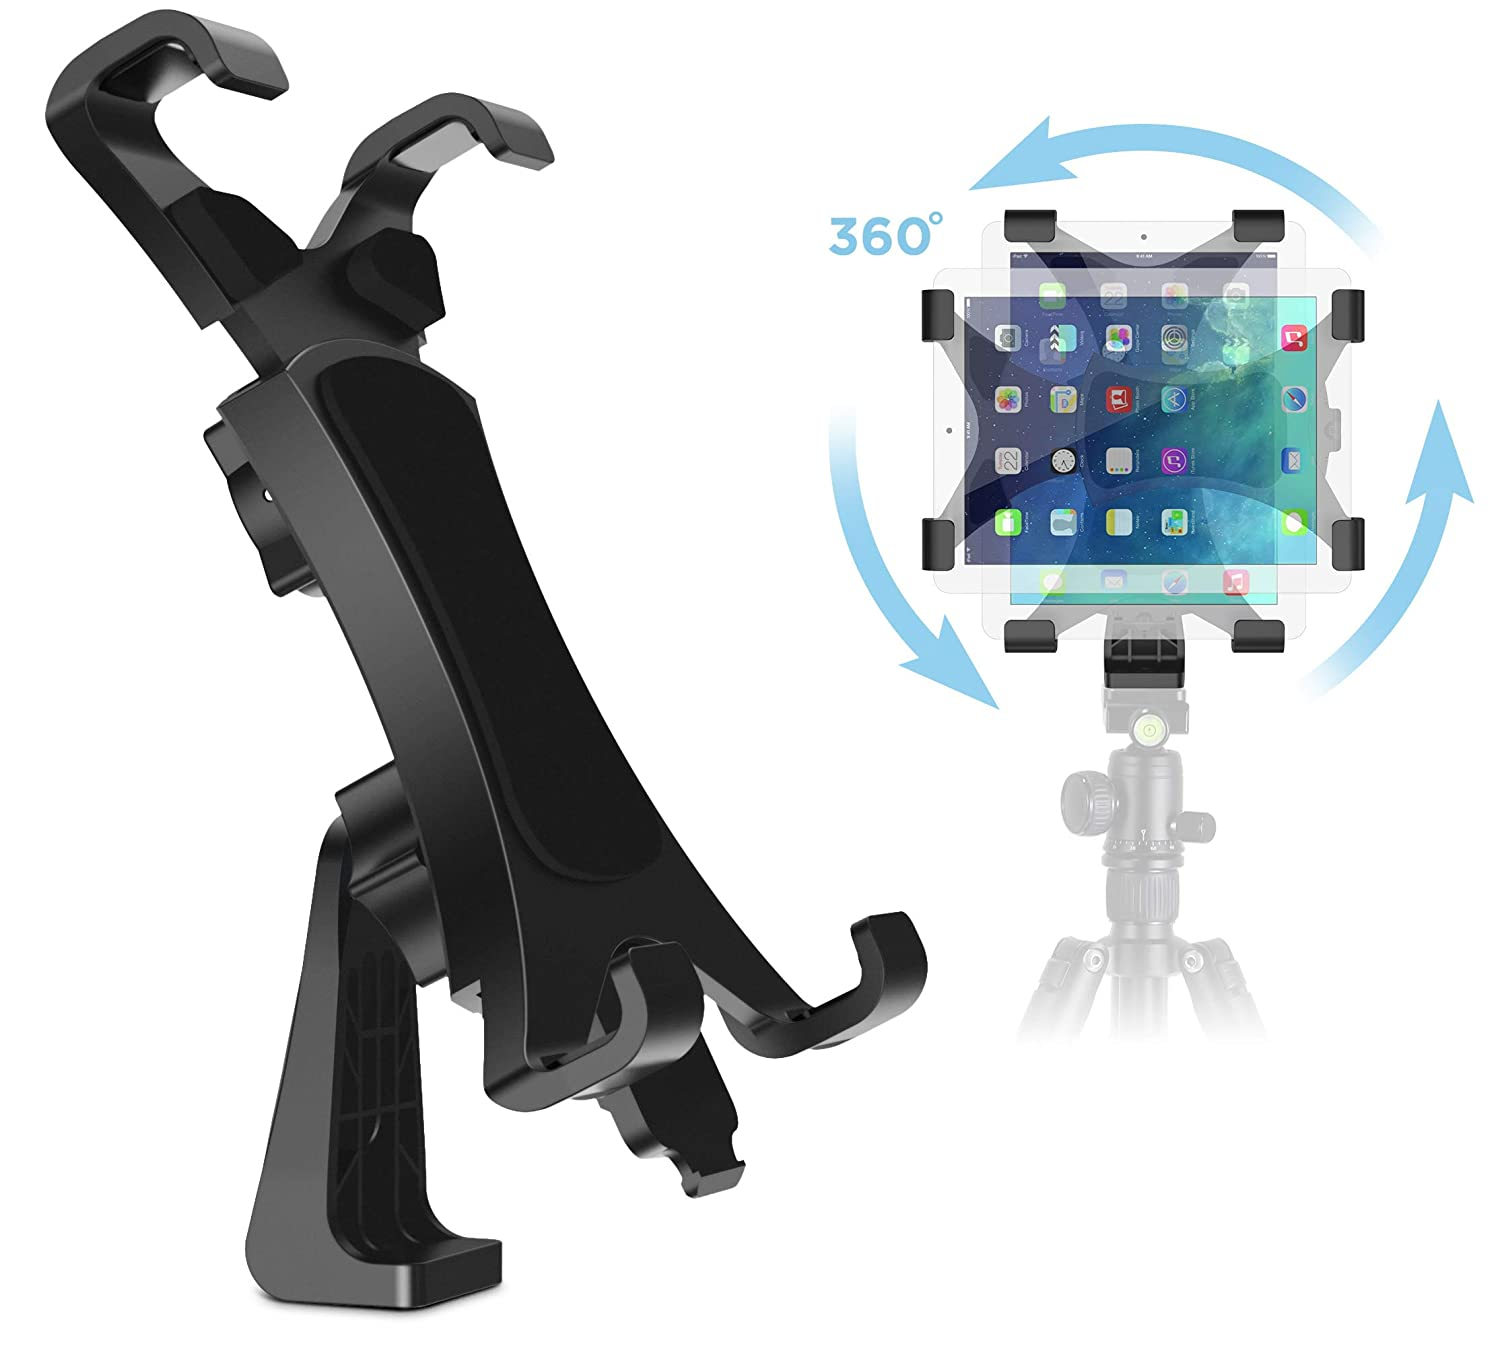 360 Degree Rotatable Break-Resistant iPad Tripod Mount Adapter, Universal Tablet Clamp Holder Fits Ipad, Ipad Air, Pro, Mini, Microsoft Surface, Nexus, for Tripod Monopod, Selfie Stick,Tabletop Stand IPOW 3222381